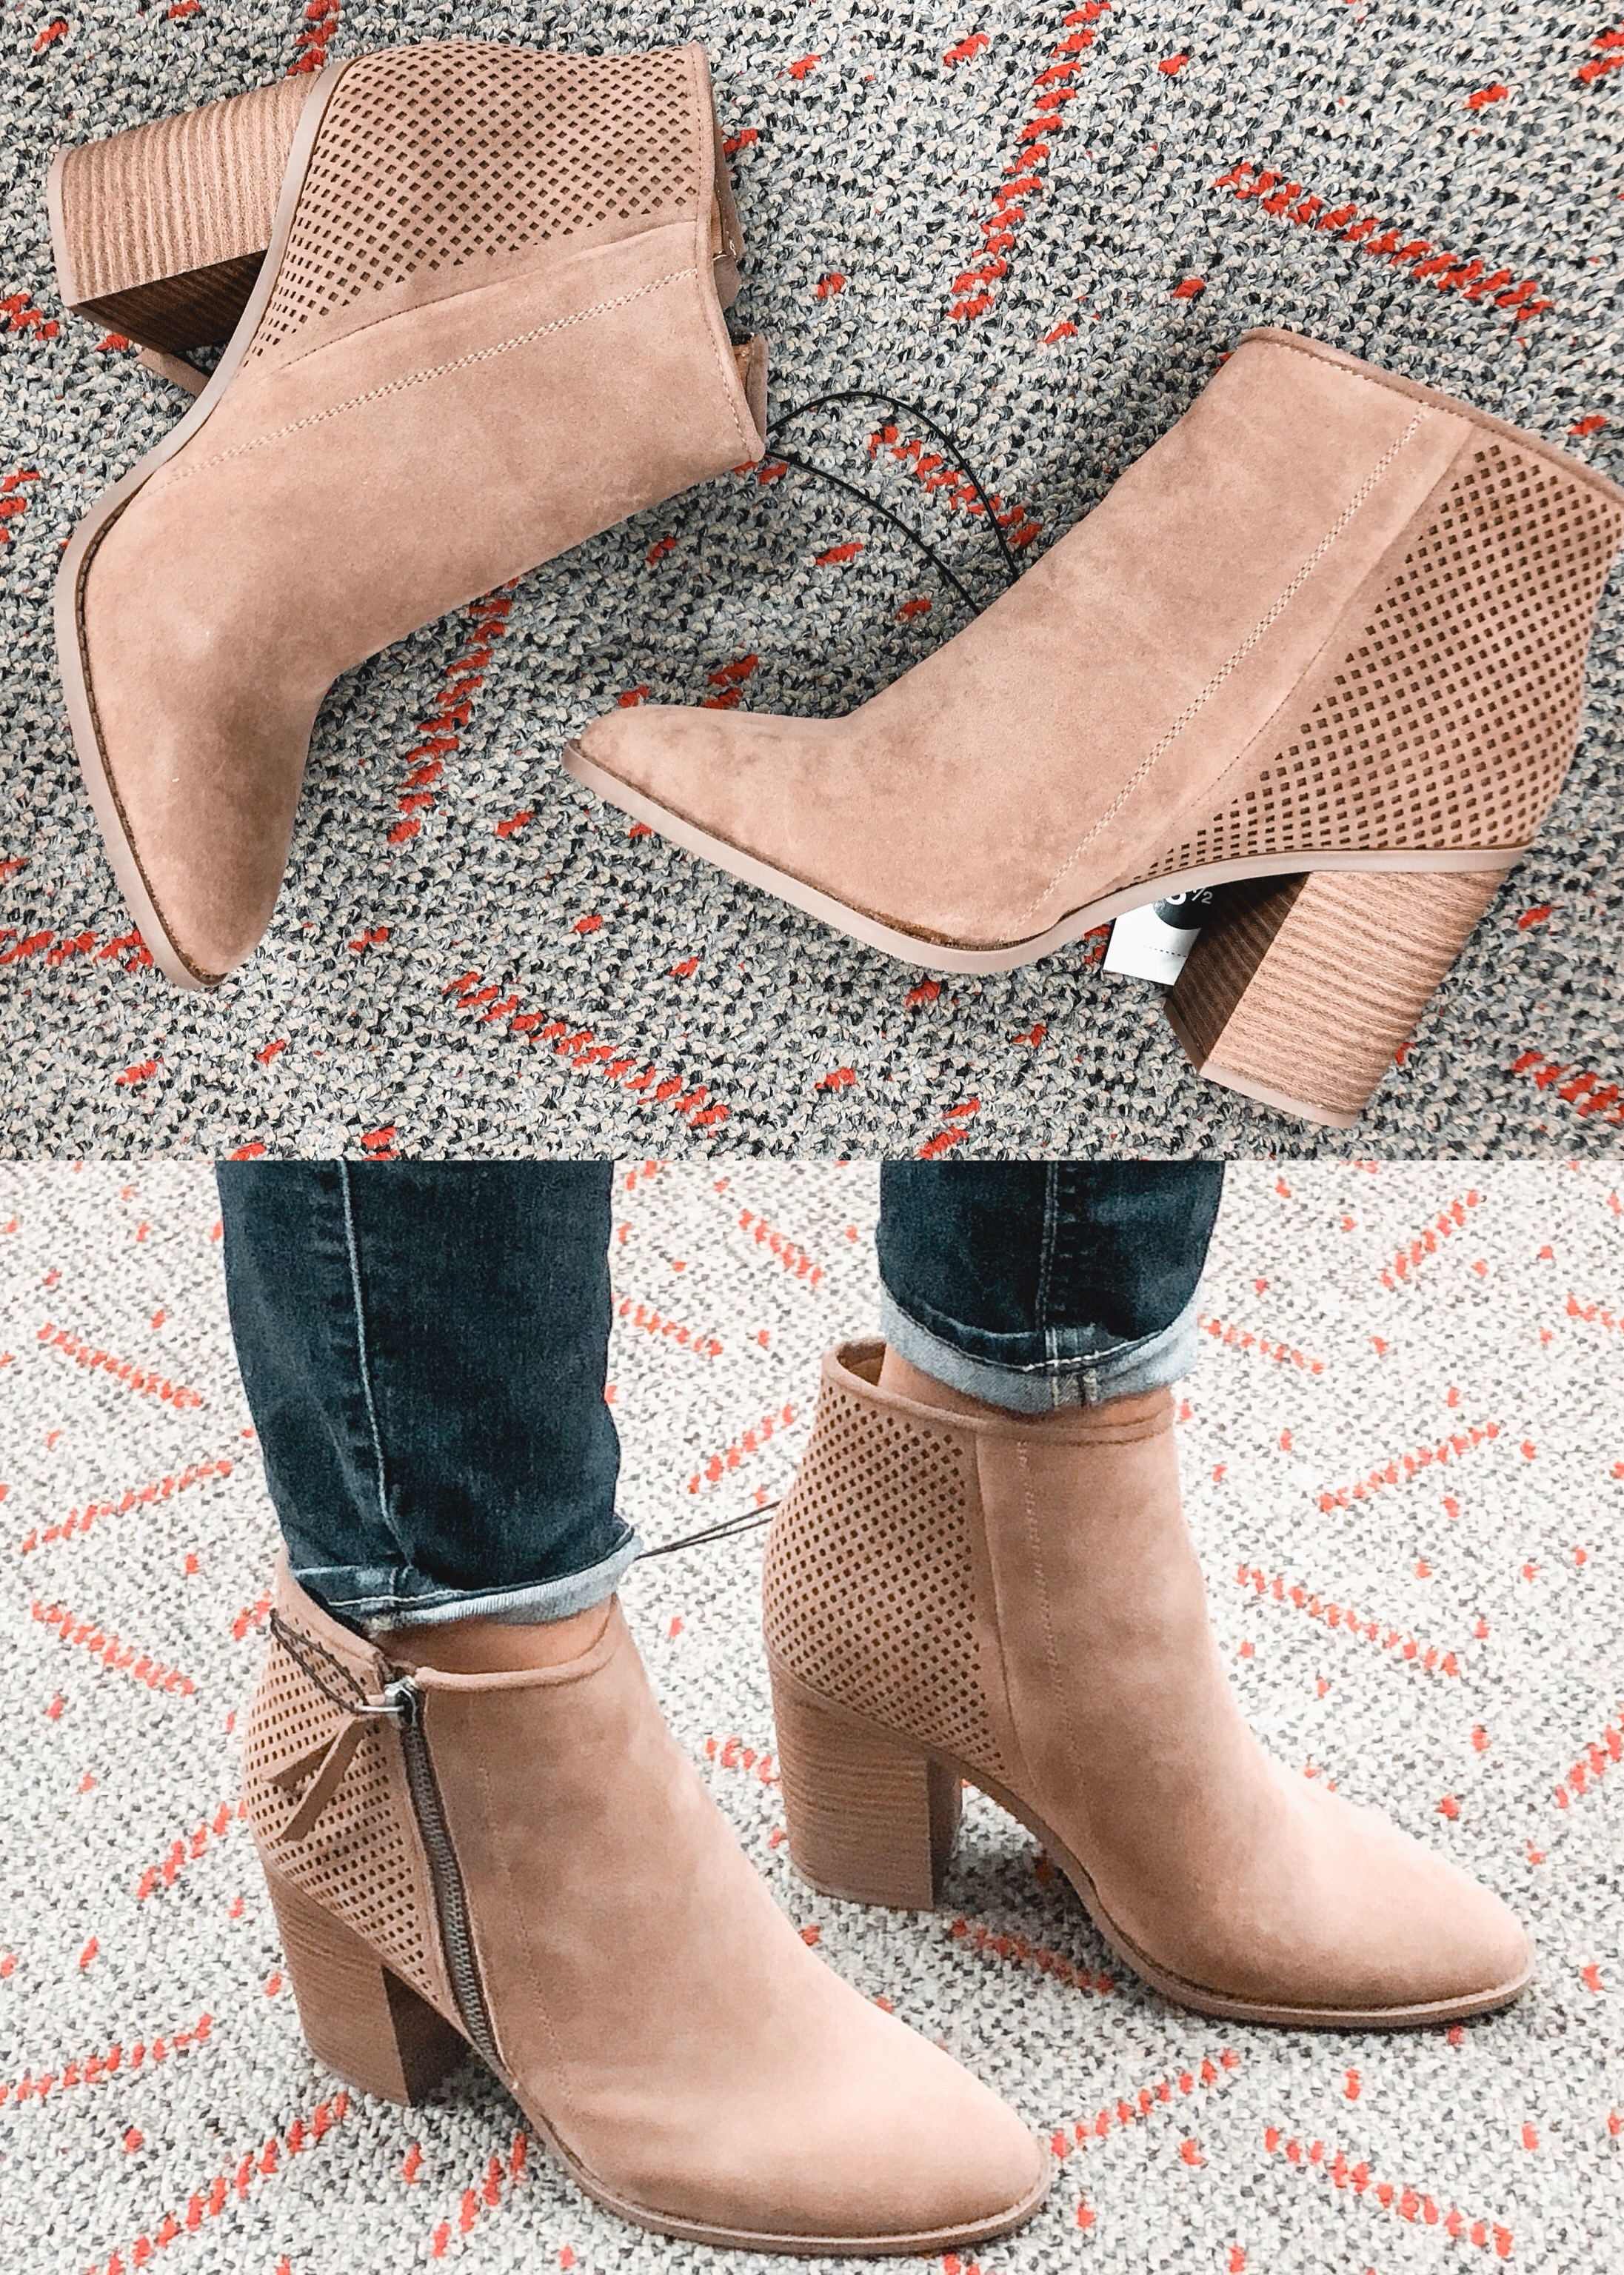 target booties review - universal thread chrissy bootie | 9 pairs of target fall shoes reviewed! bylaurenm.com